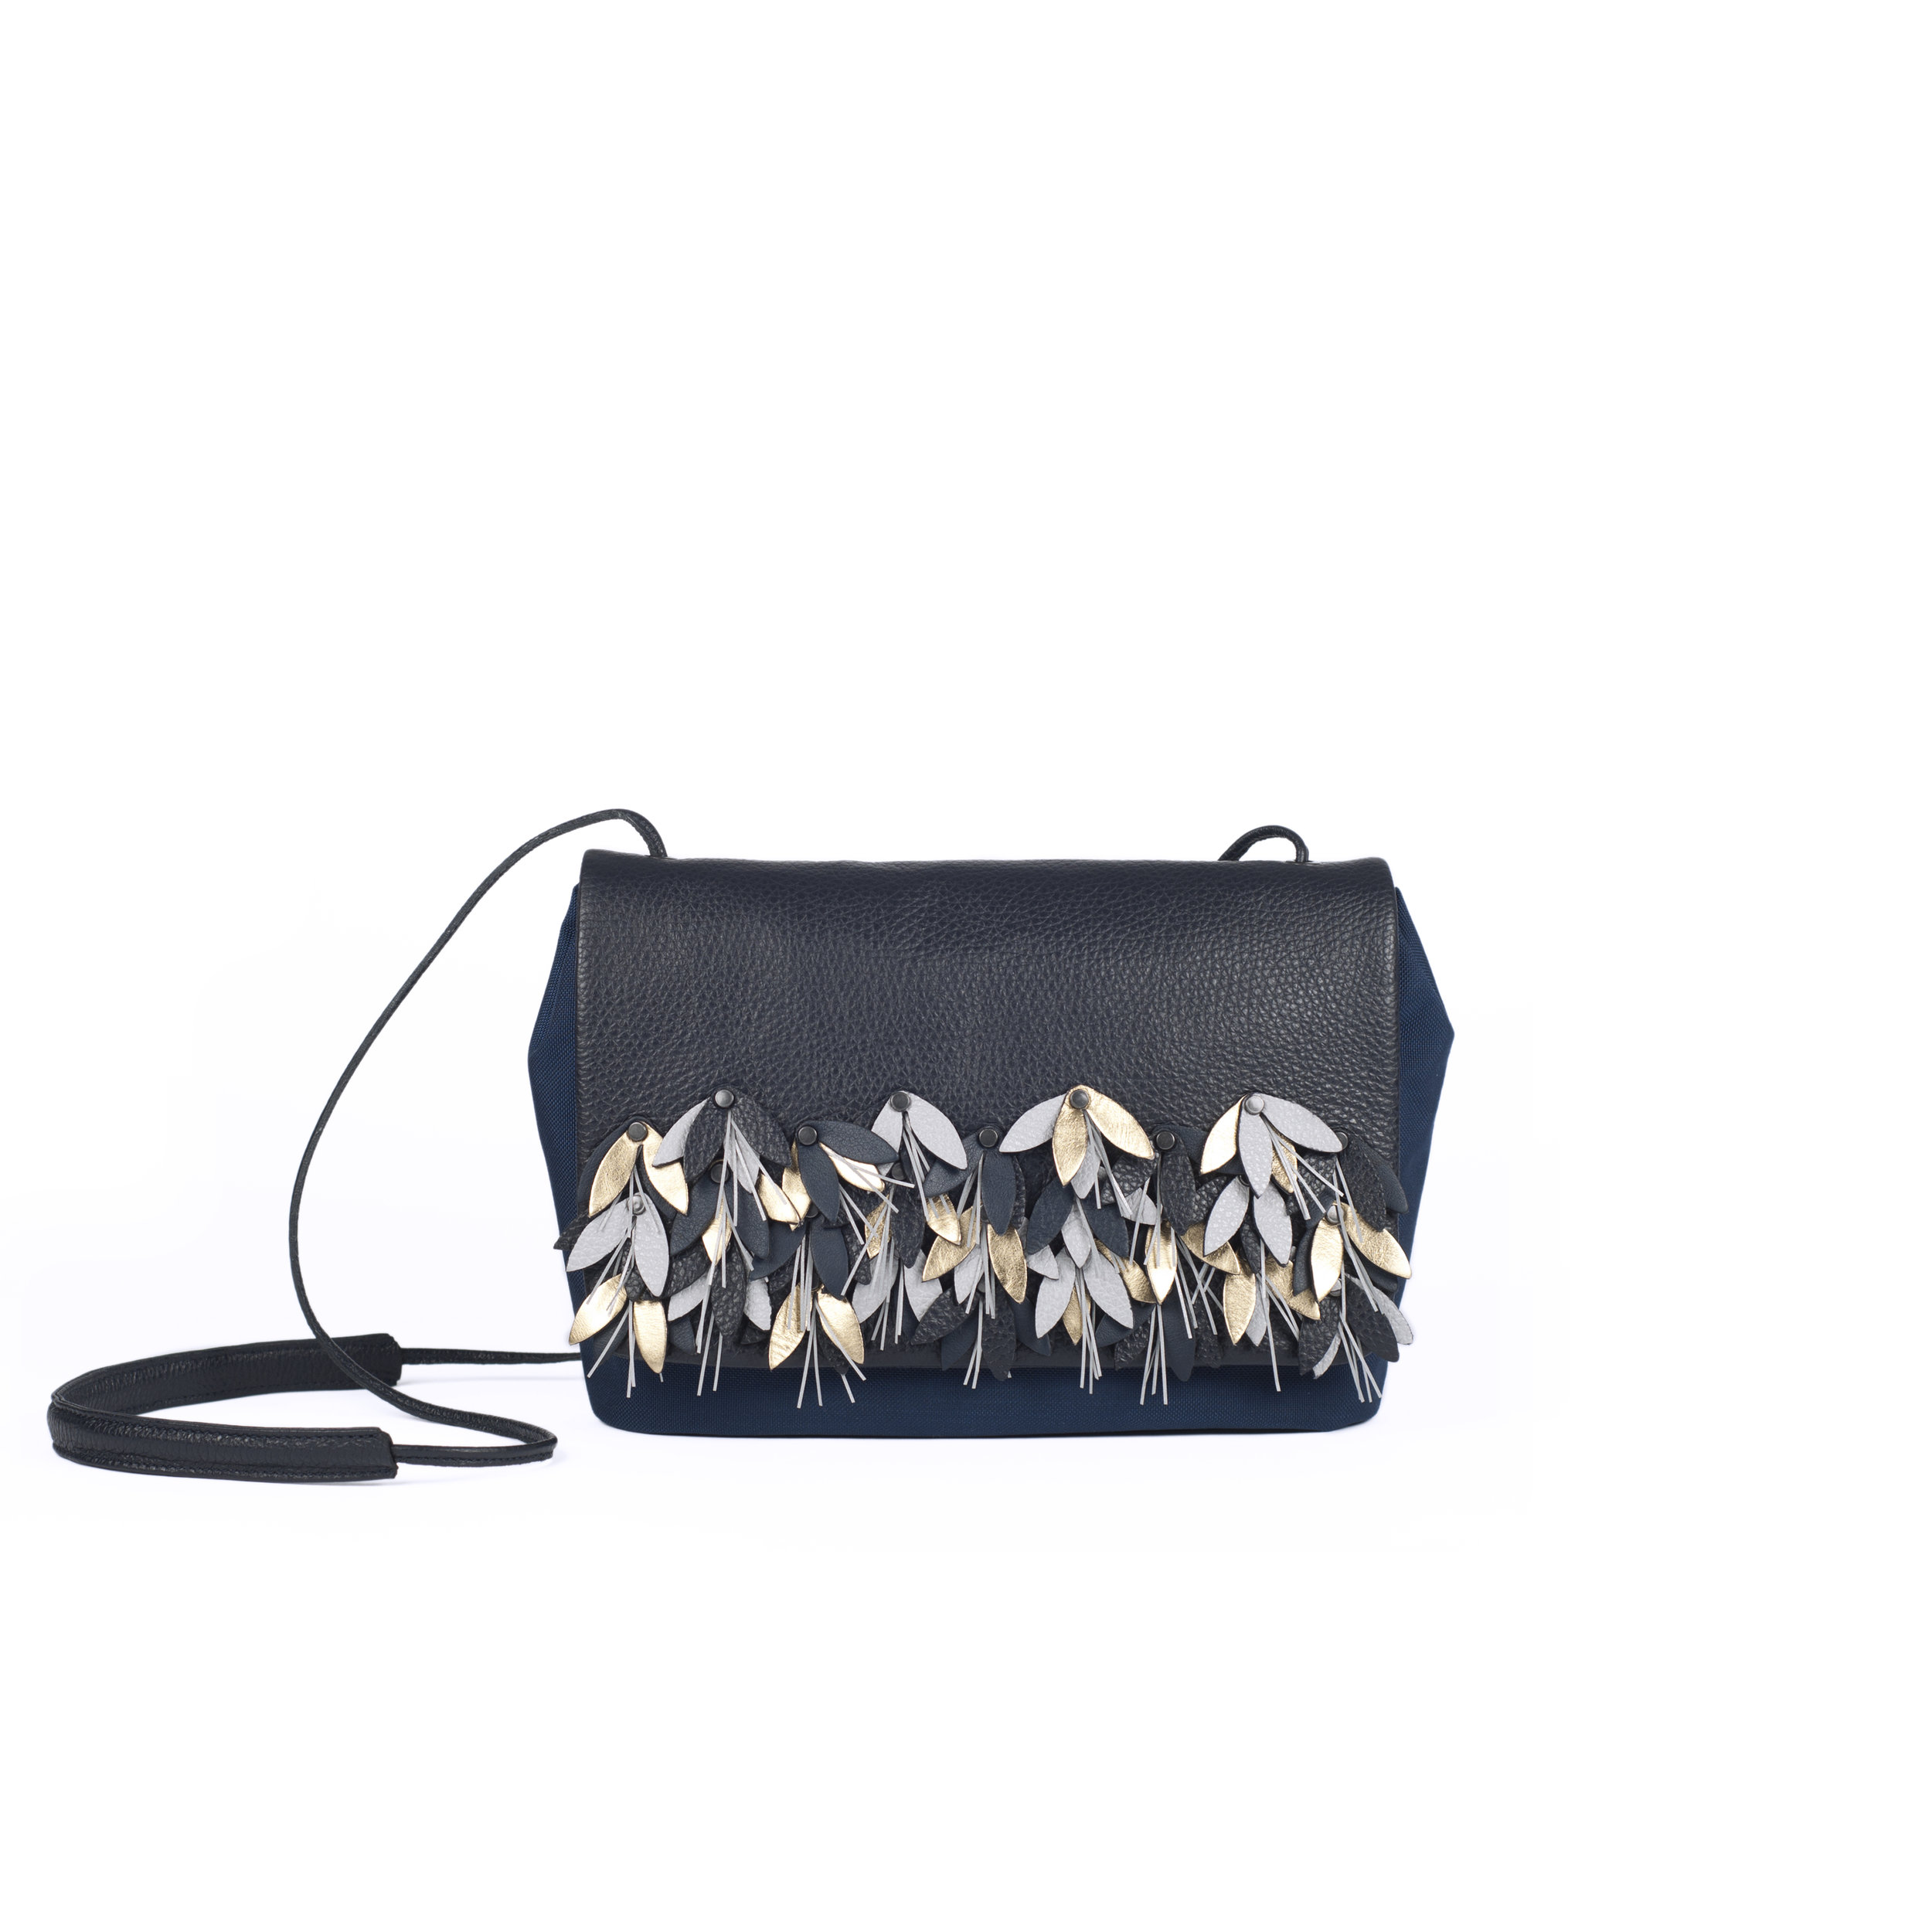 leather clutch handbag with reflective details | Pauline